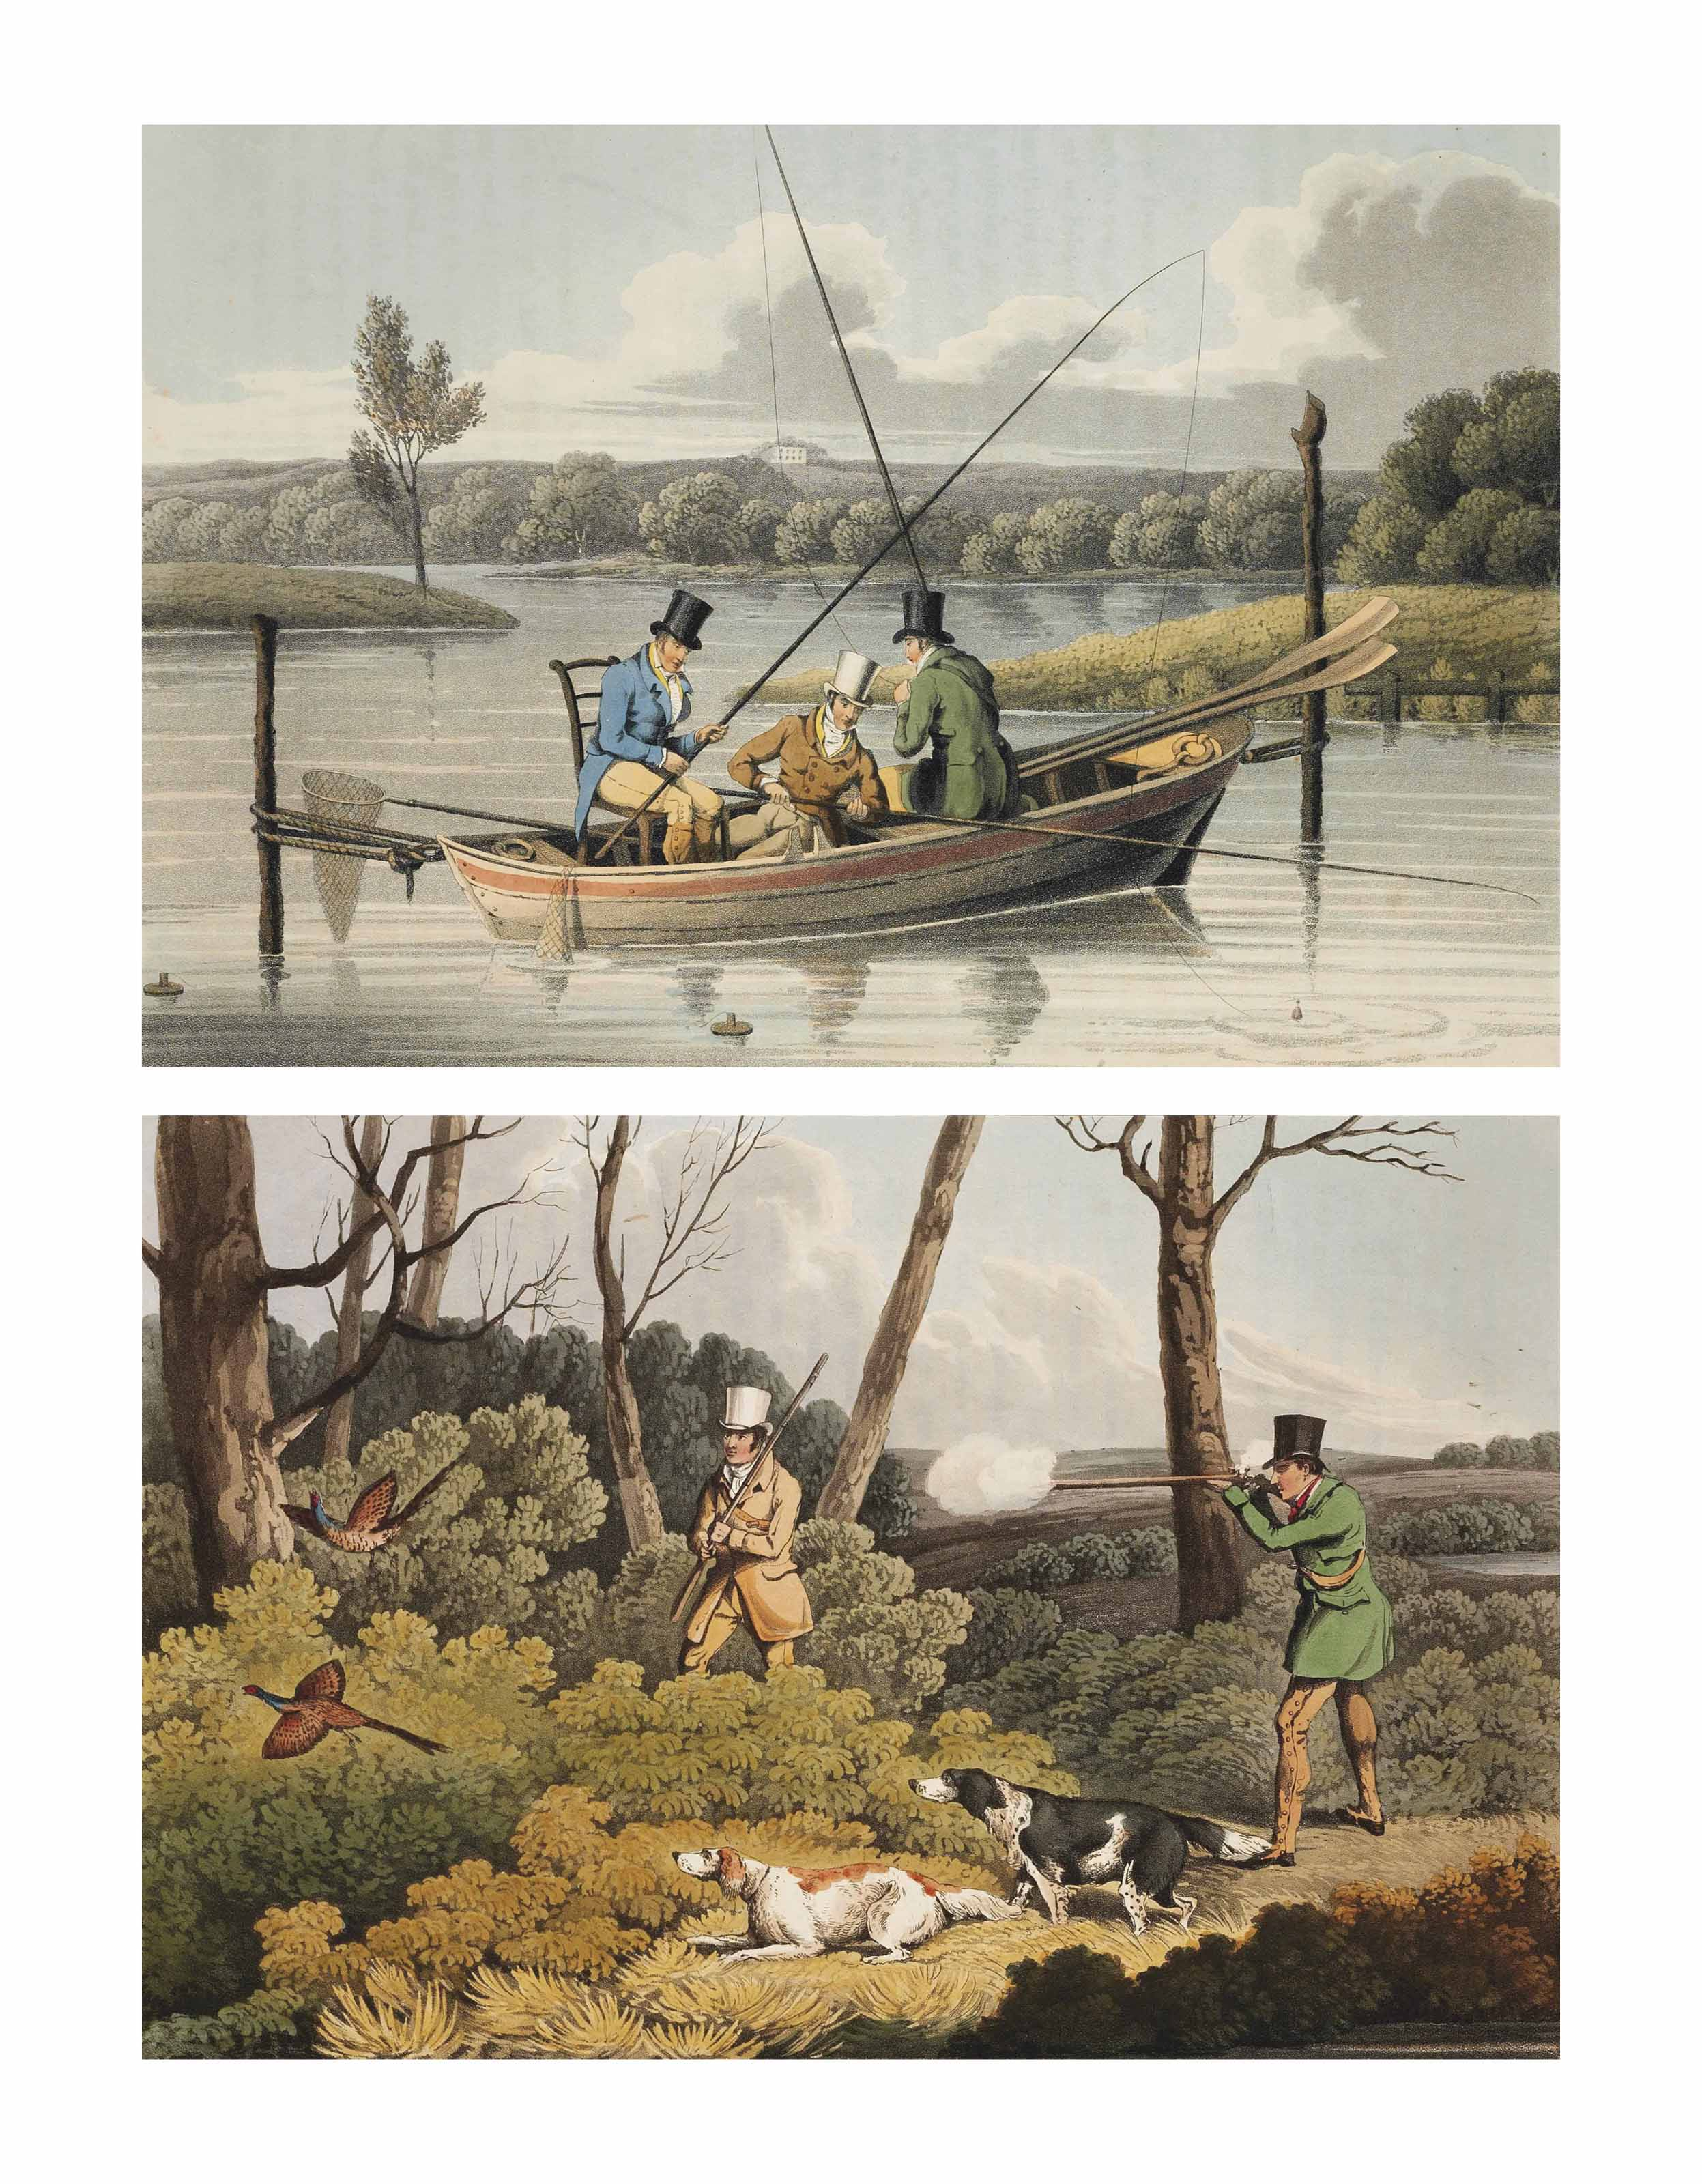 ALKEN, Henry. The National Sports of Great Britain. London: Thomas McLean, 1820-1821. 2° (475 x 315mm). Hand-coloured aquatint frontispiece and 50 hand-coloured aquatint plates by J. Clark after Alken, parallel text in English and French. (Light creasemark to frontispiece and title, light dust-soiling and occasional spotting of plate margins, a few isolated spots and some faint offsetting to images.) Contemporary blue straight-grained morocco, sides panelled in gilt and blind, gilt spine compartments, two decorated with a stag, the rest with title and arabesques, gilt edges (joints neatly restored, covers lightly scuffed). Provenance: Fitz Eugene Dixon (bookplate; his sale, Anderson Galleries, New York, 6 January 1937, lot 26, $1,825 [£365]) -- Prince Henry, Duke of Gloucester (bookplate; his sale, Christie's London, 26-27 January 2006, lot 611).